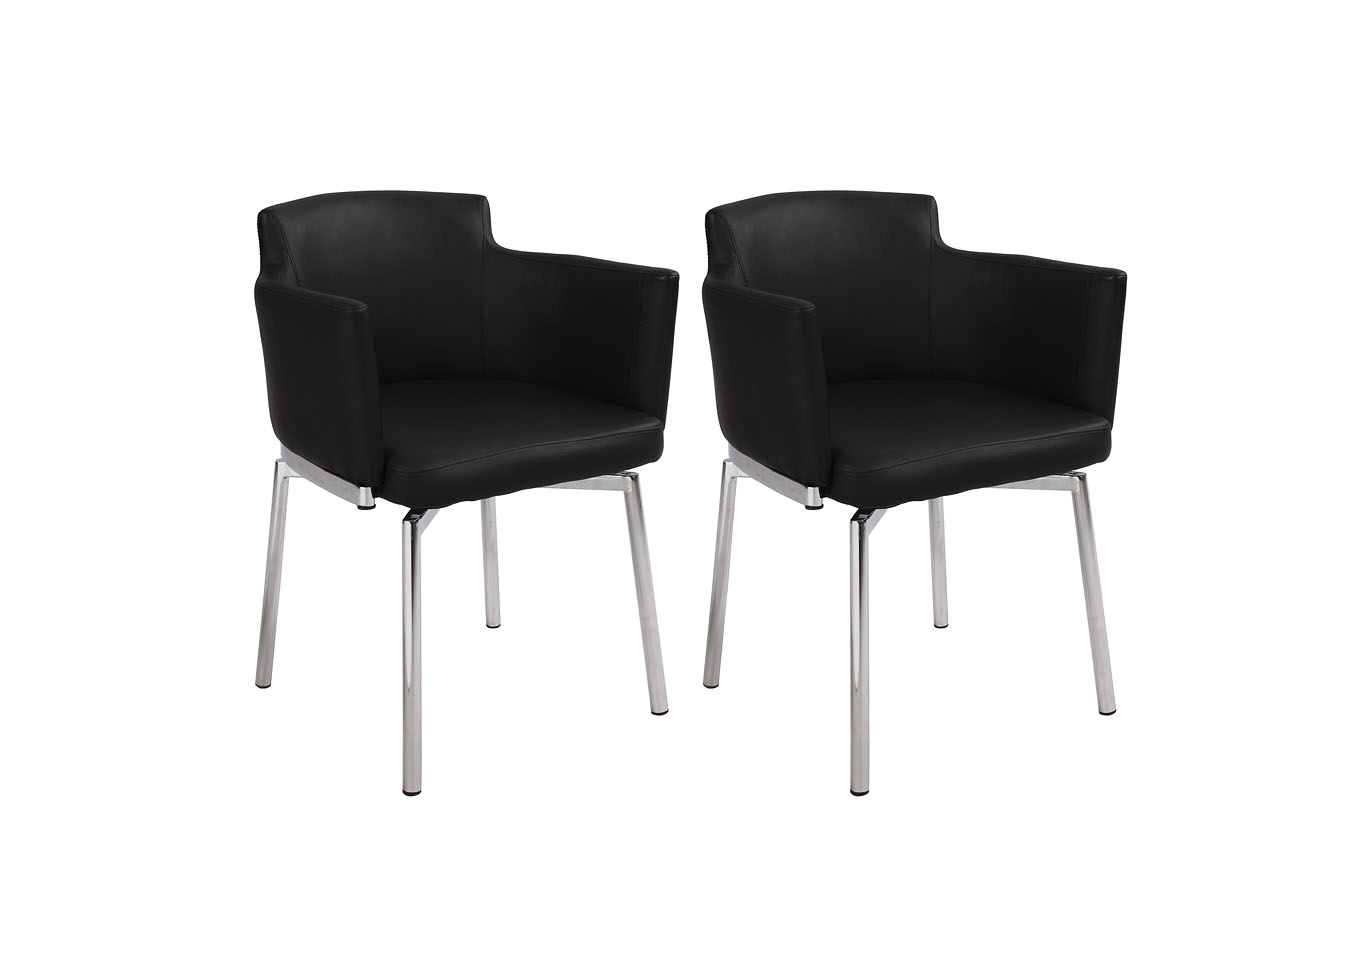 Dusty Black Club Style Arm Dining Chair (Set of 2) with Memory Swivel,Chintaly Imports